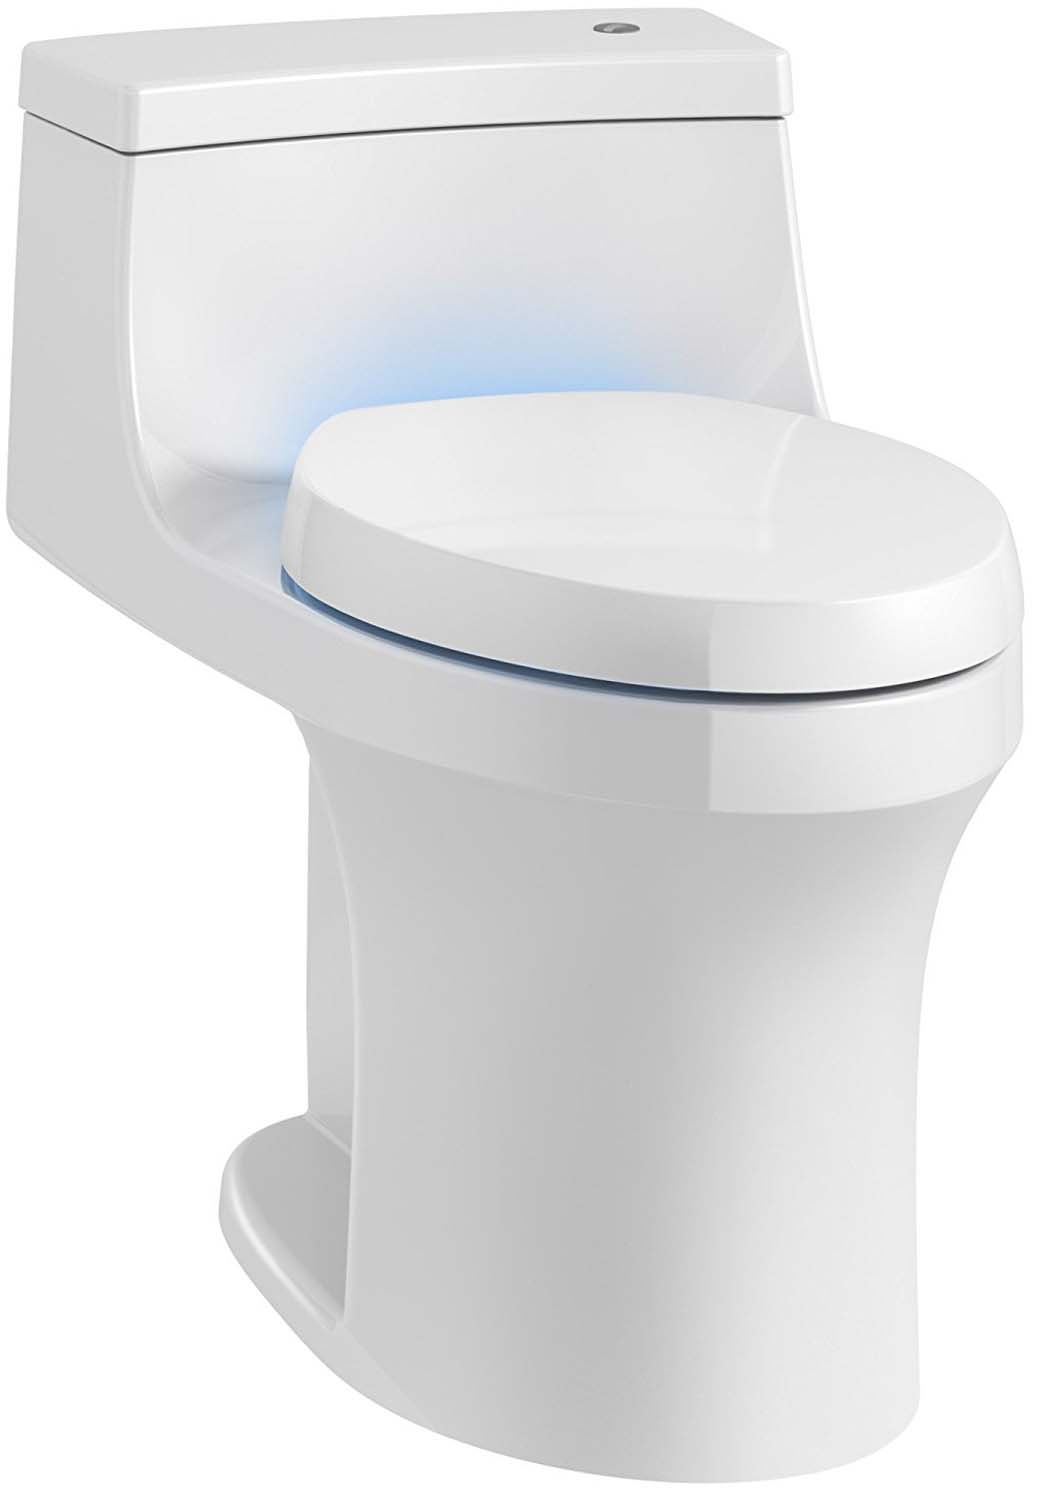 KOHLER K-8687 San Souci Comfort Height Touchless Flush with Purefresh Seat